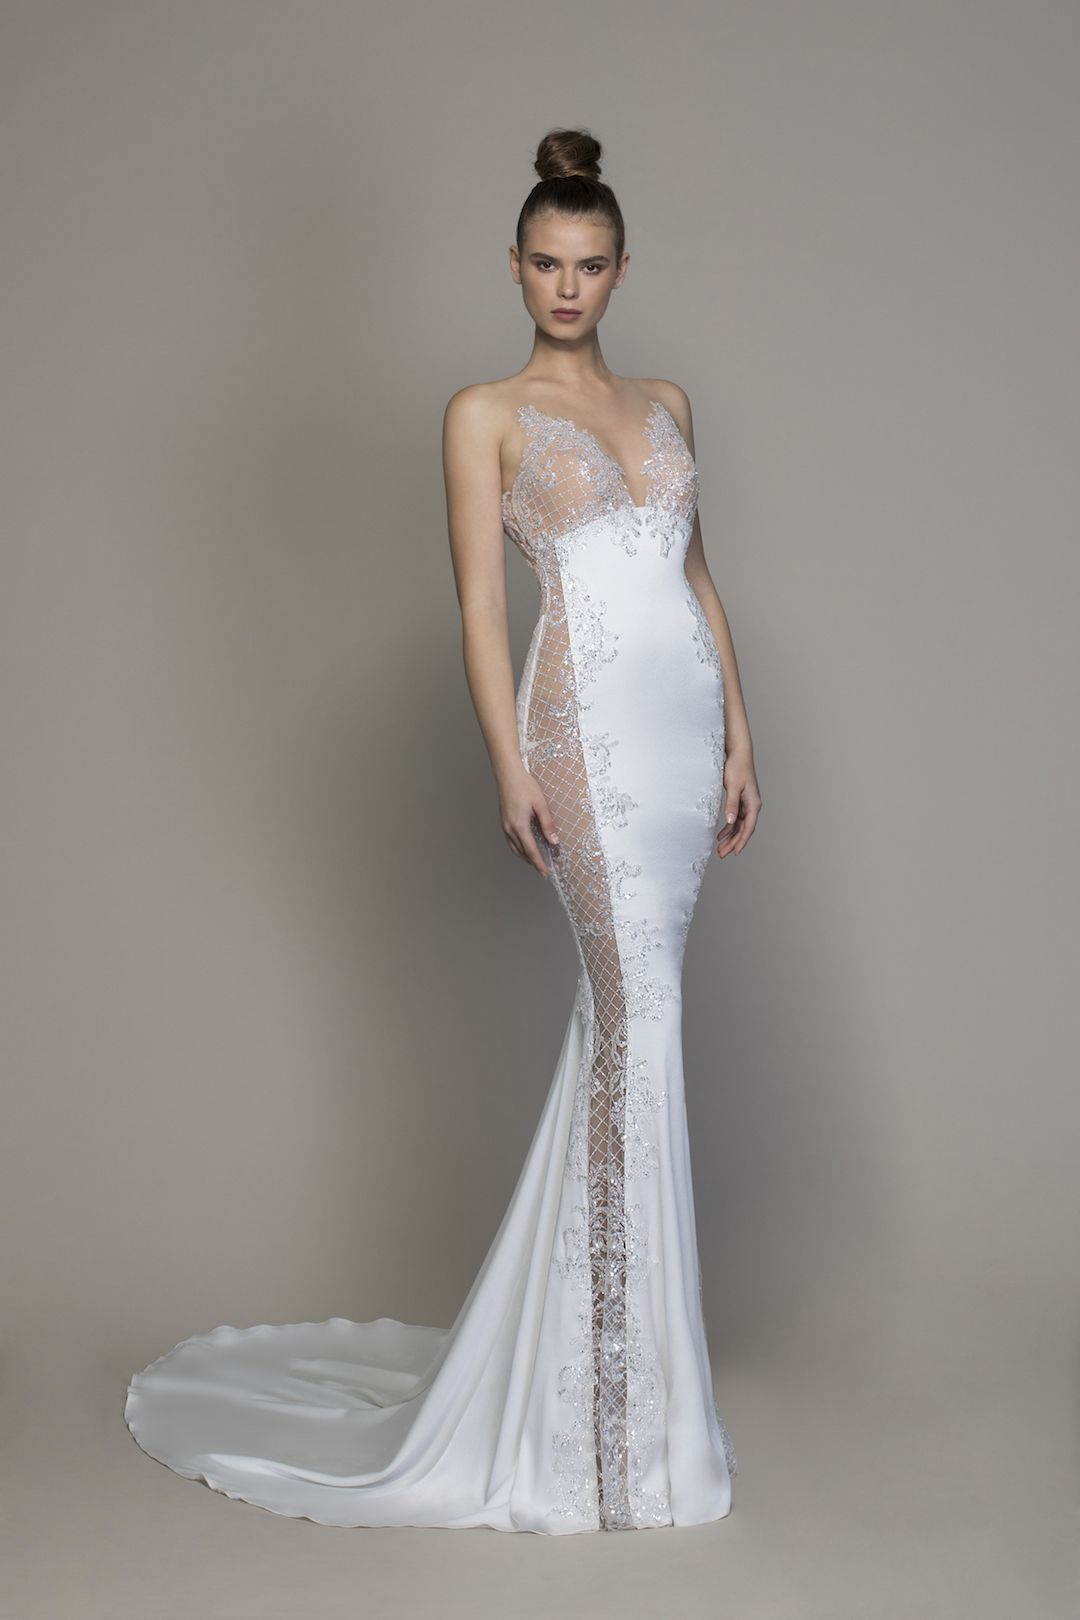 49c7162193 Sheath style gown made from crepe with lattice style sheer cutouts on sides  made from micro